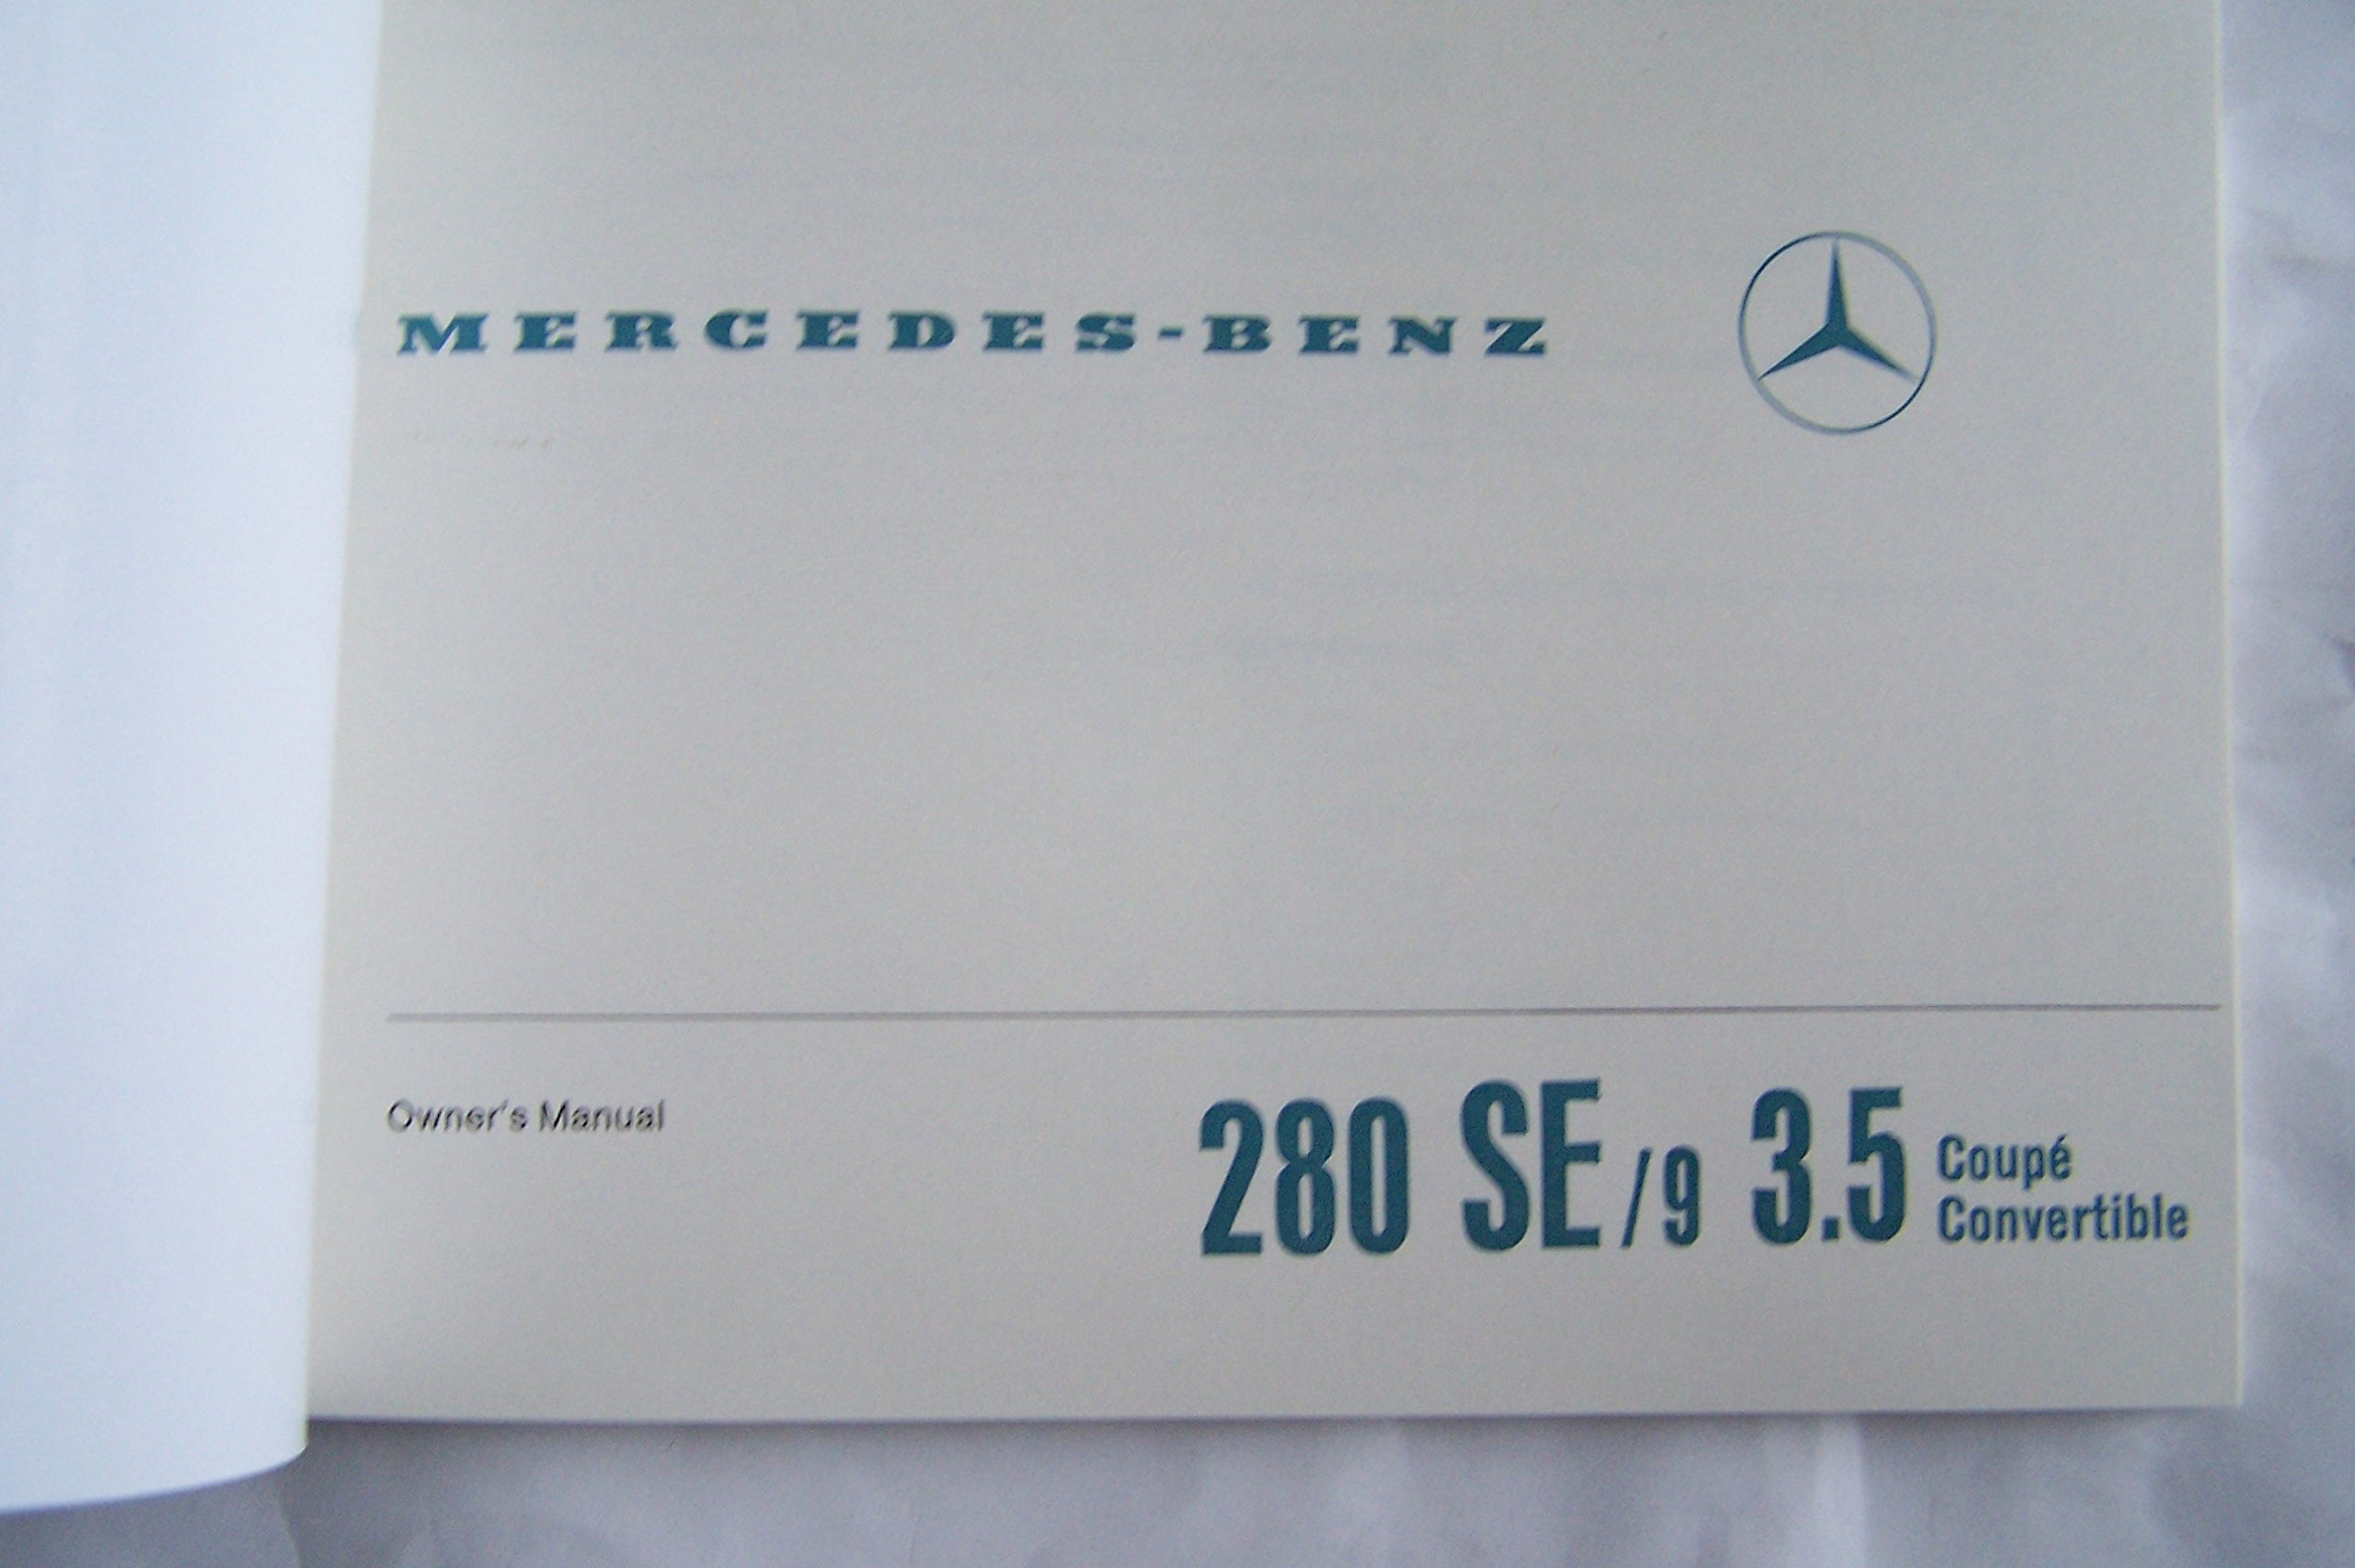 1971 Mercedes Benz 280 Se/c 3.5 Convertible Coupe Owners Manual 1970:  0609408151552: Amazon.com: Books